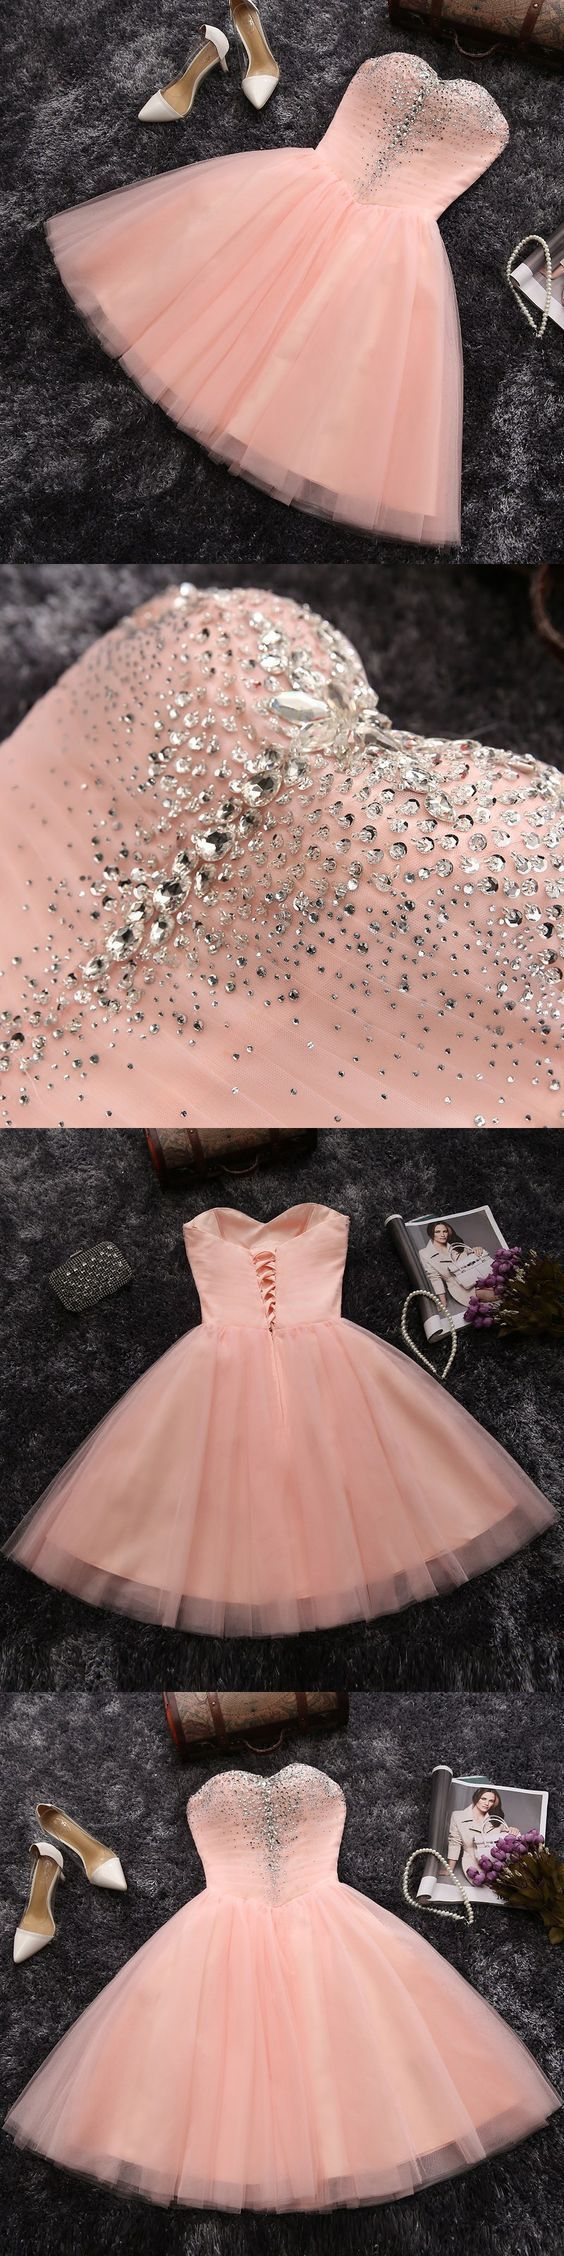 Charming Prom Dress,Tulle Pink Prom Dress,Short Prom Dresses